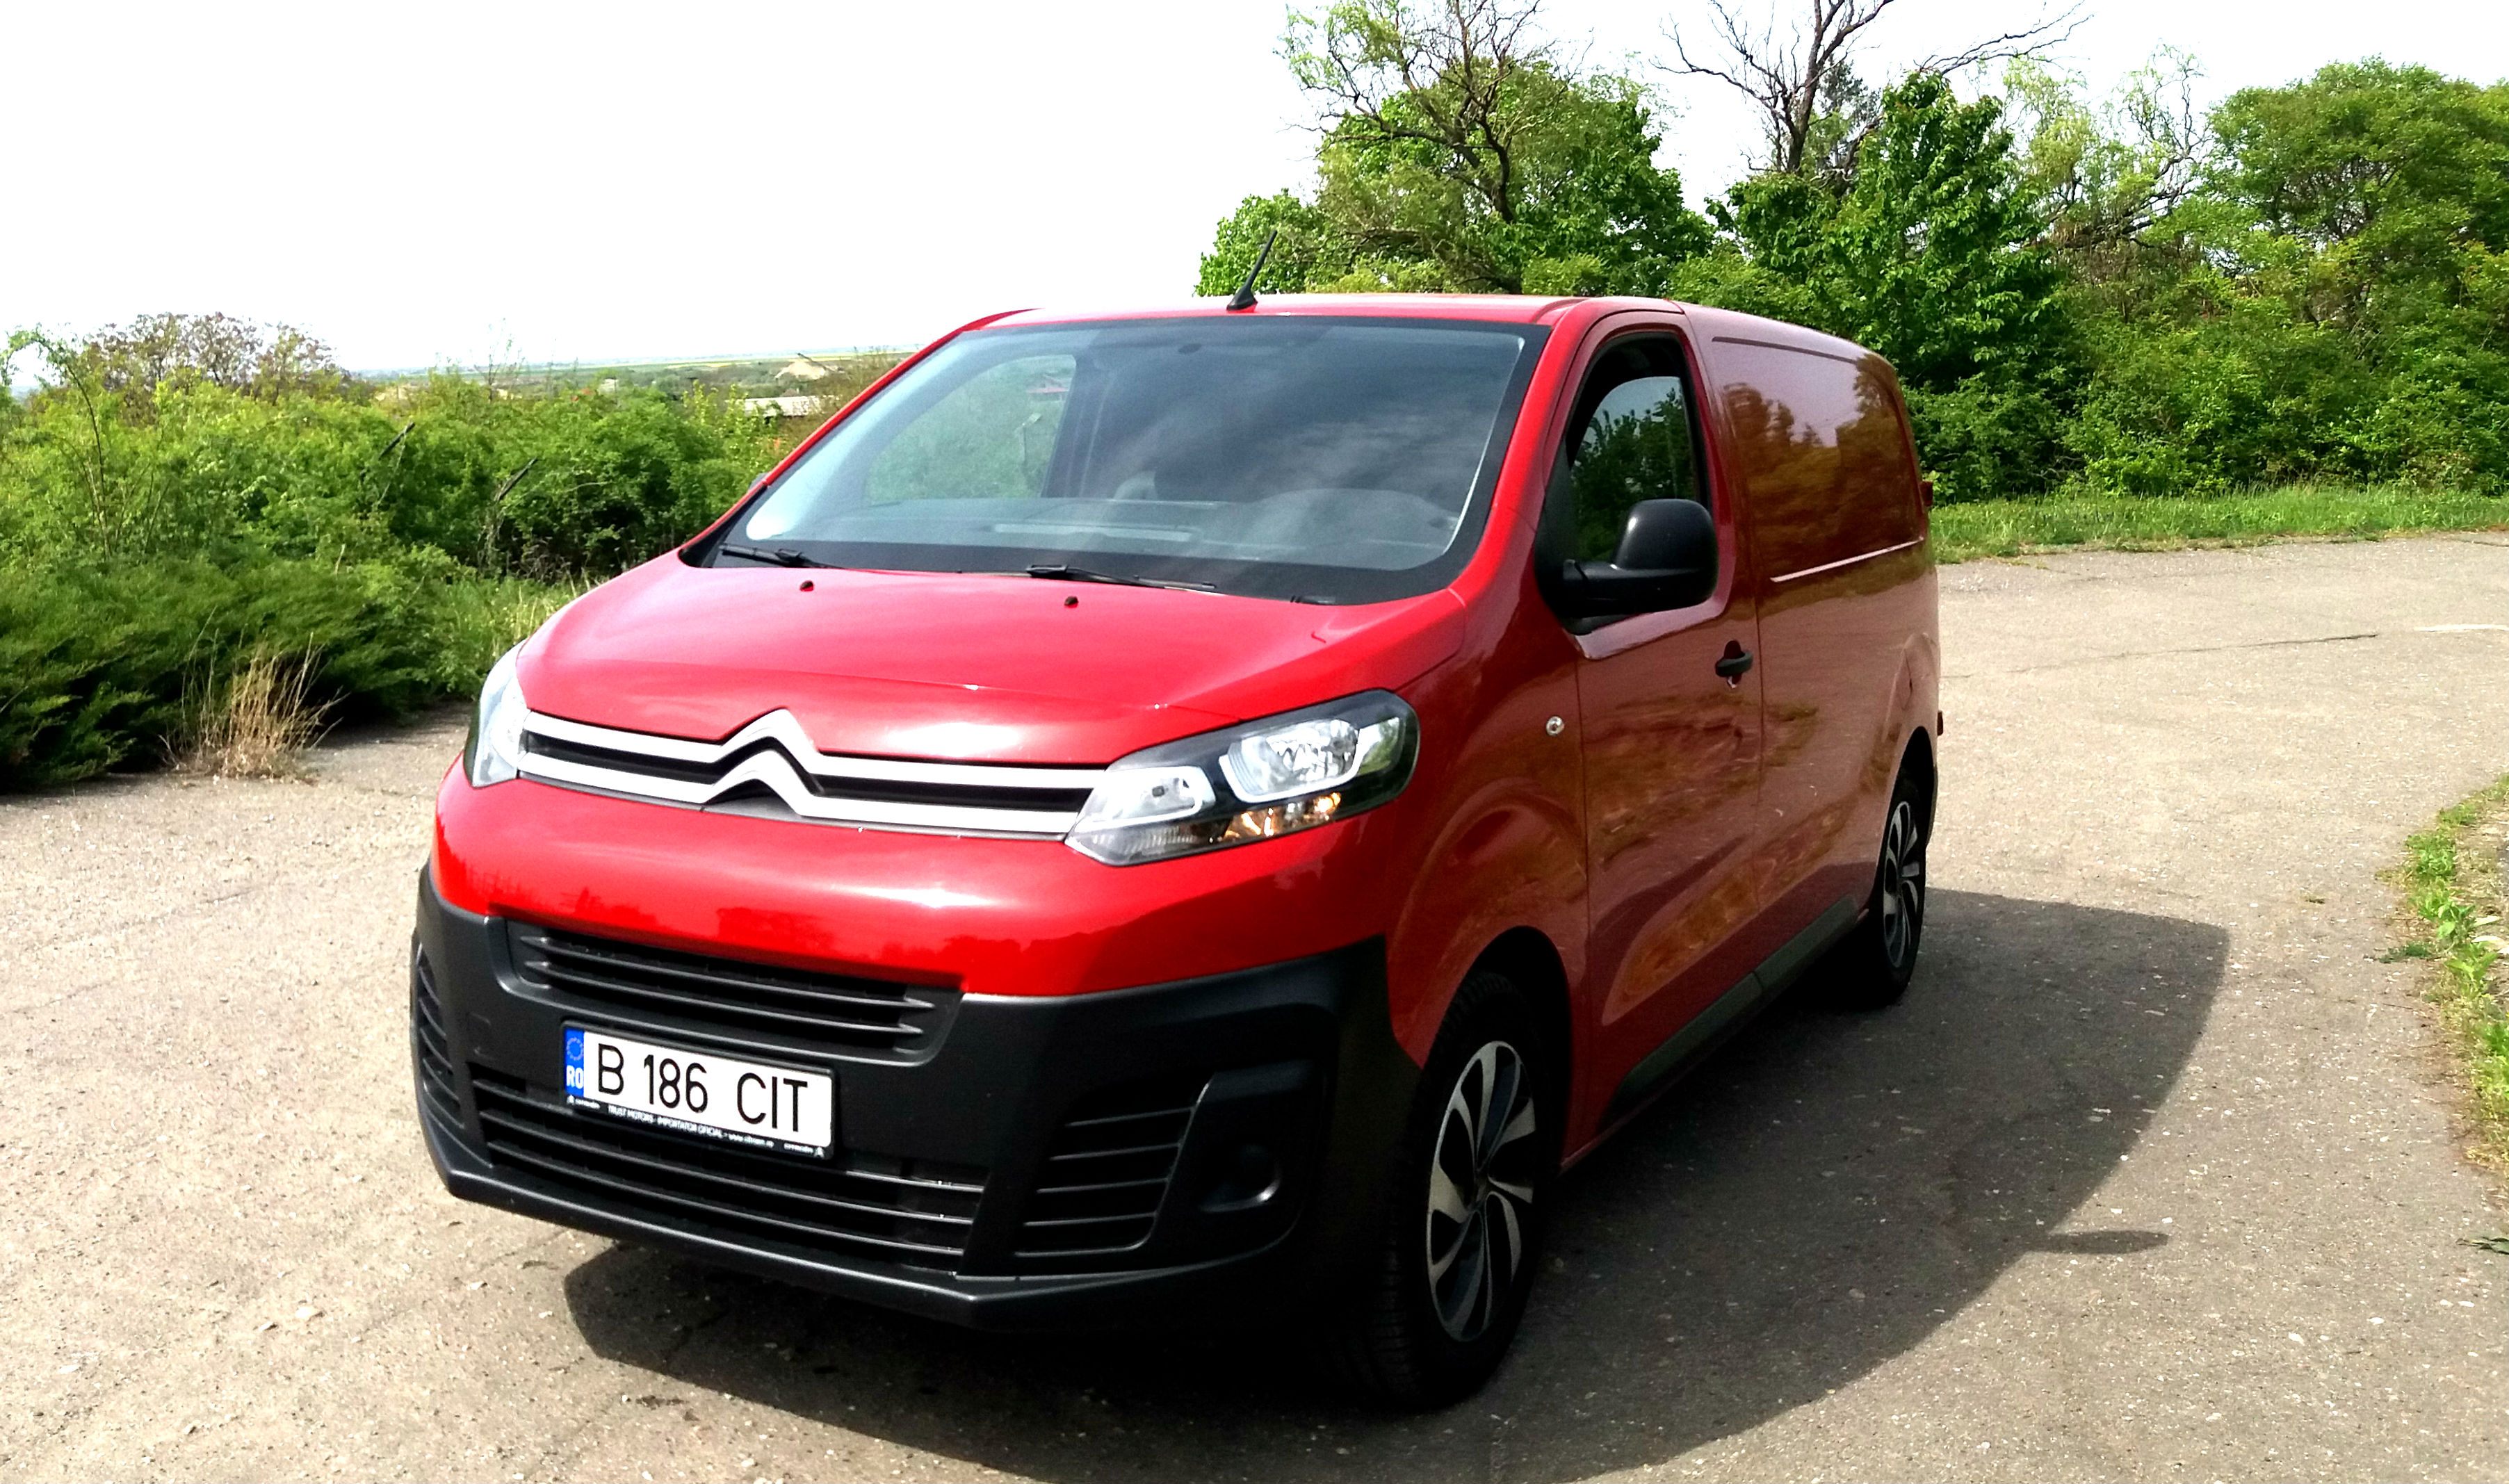 Citroen Jumpy 2017 1.6 BlueHDI S&S 115 CP, test drive, drive test, test premiera whattruck, test autolatest, test Citroen Jumpy 2017 1.6 BlueHDI S&S 115 CP, consum Citroen Jumpy 2017 1.6 BlueHDI S&S 115 CP, lista preturi Citroen Jumpy 2017 1.6 BlueHDI S&S 115 CP, bucuresti timisoara Citroen Jumpy 2017 1.6 BlueHDI S&S 115 CP, test consum Citroen Jumpy 2017 1.6 BlueHDI S&S 115 CP, 0-100 km.h Citroen Jumpy 2017 1.6 BlueHDI S&S 115 CP, valoare de revanzare, vw transporter t6 vs Citroen Jumpy 2017 1.6 BlueHDI S&S 115 CP, renault trafic 1.6 dci vs Citroen Jumpy 2017 1.6 BlueHDI S&S 115 CP, toyota proace 1.6 DID vs Citroen Jumpy 2017 1.6 BlueHDI S&S 115 CP